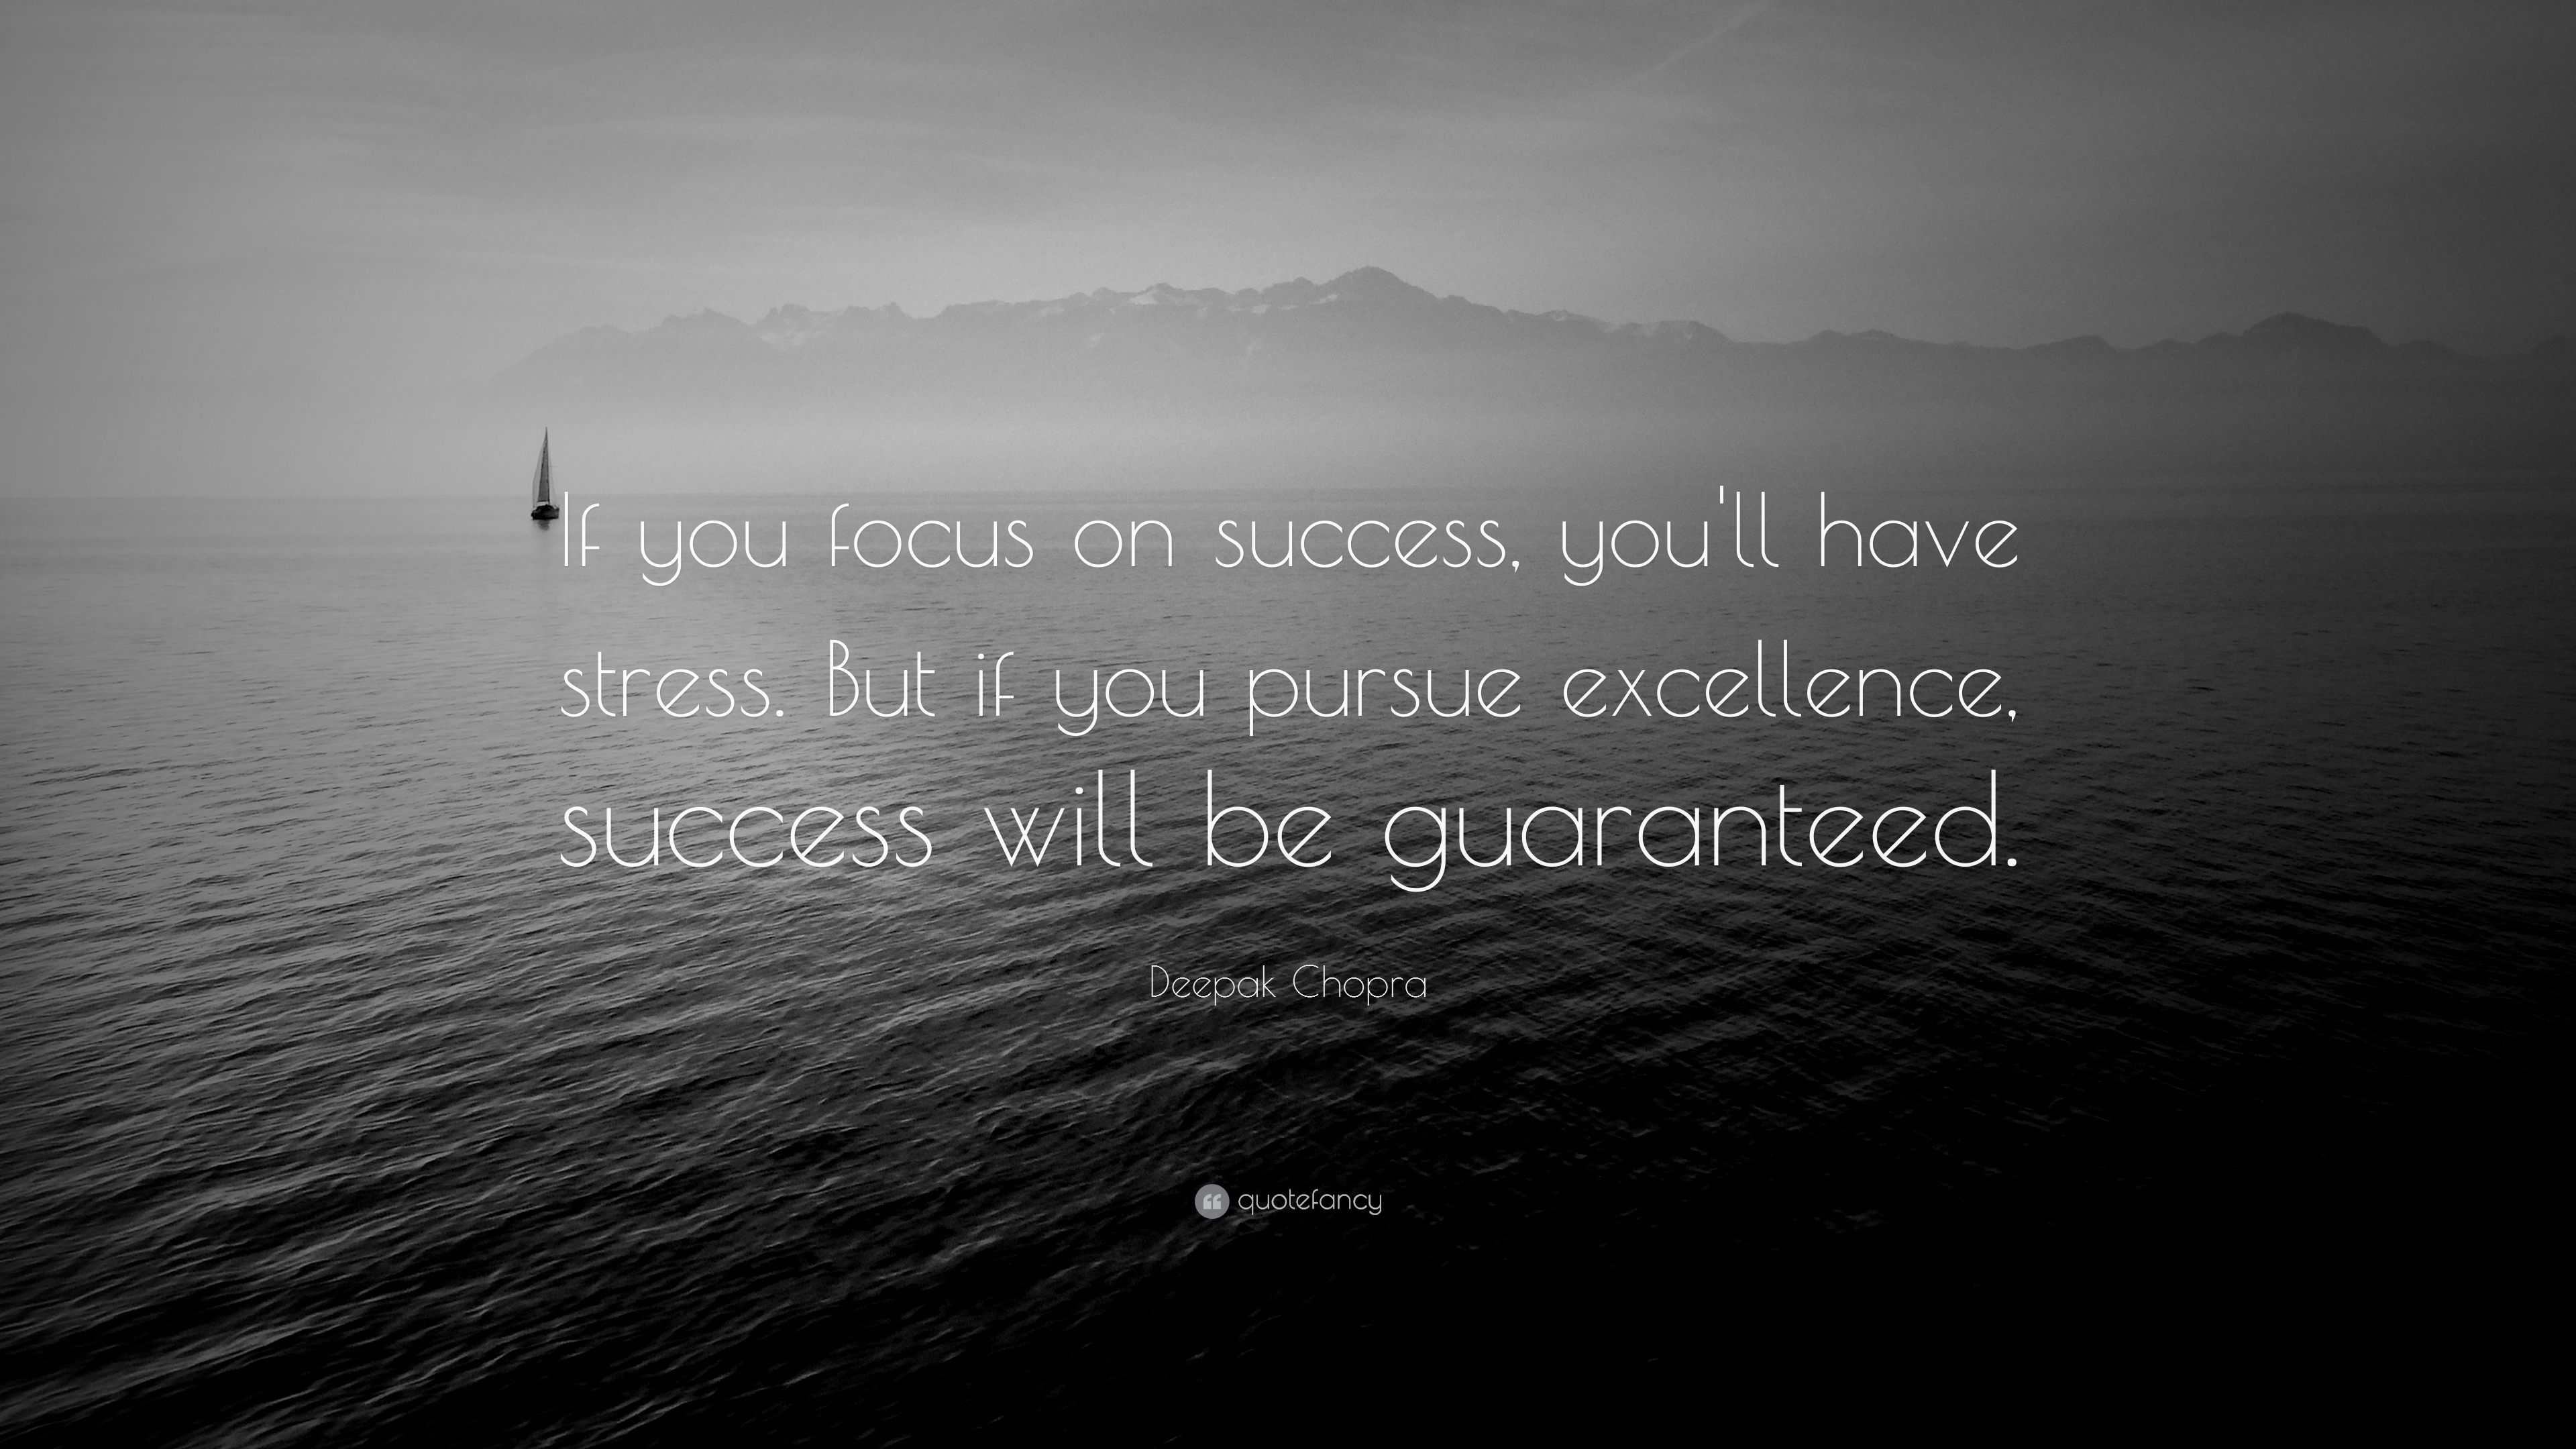 success quotes if you focus on success youll have stress